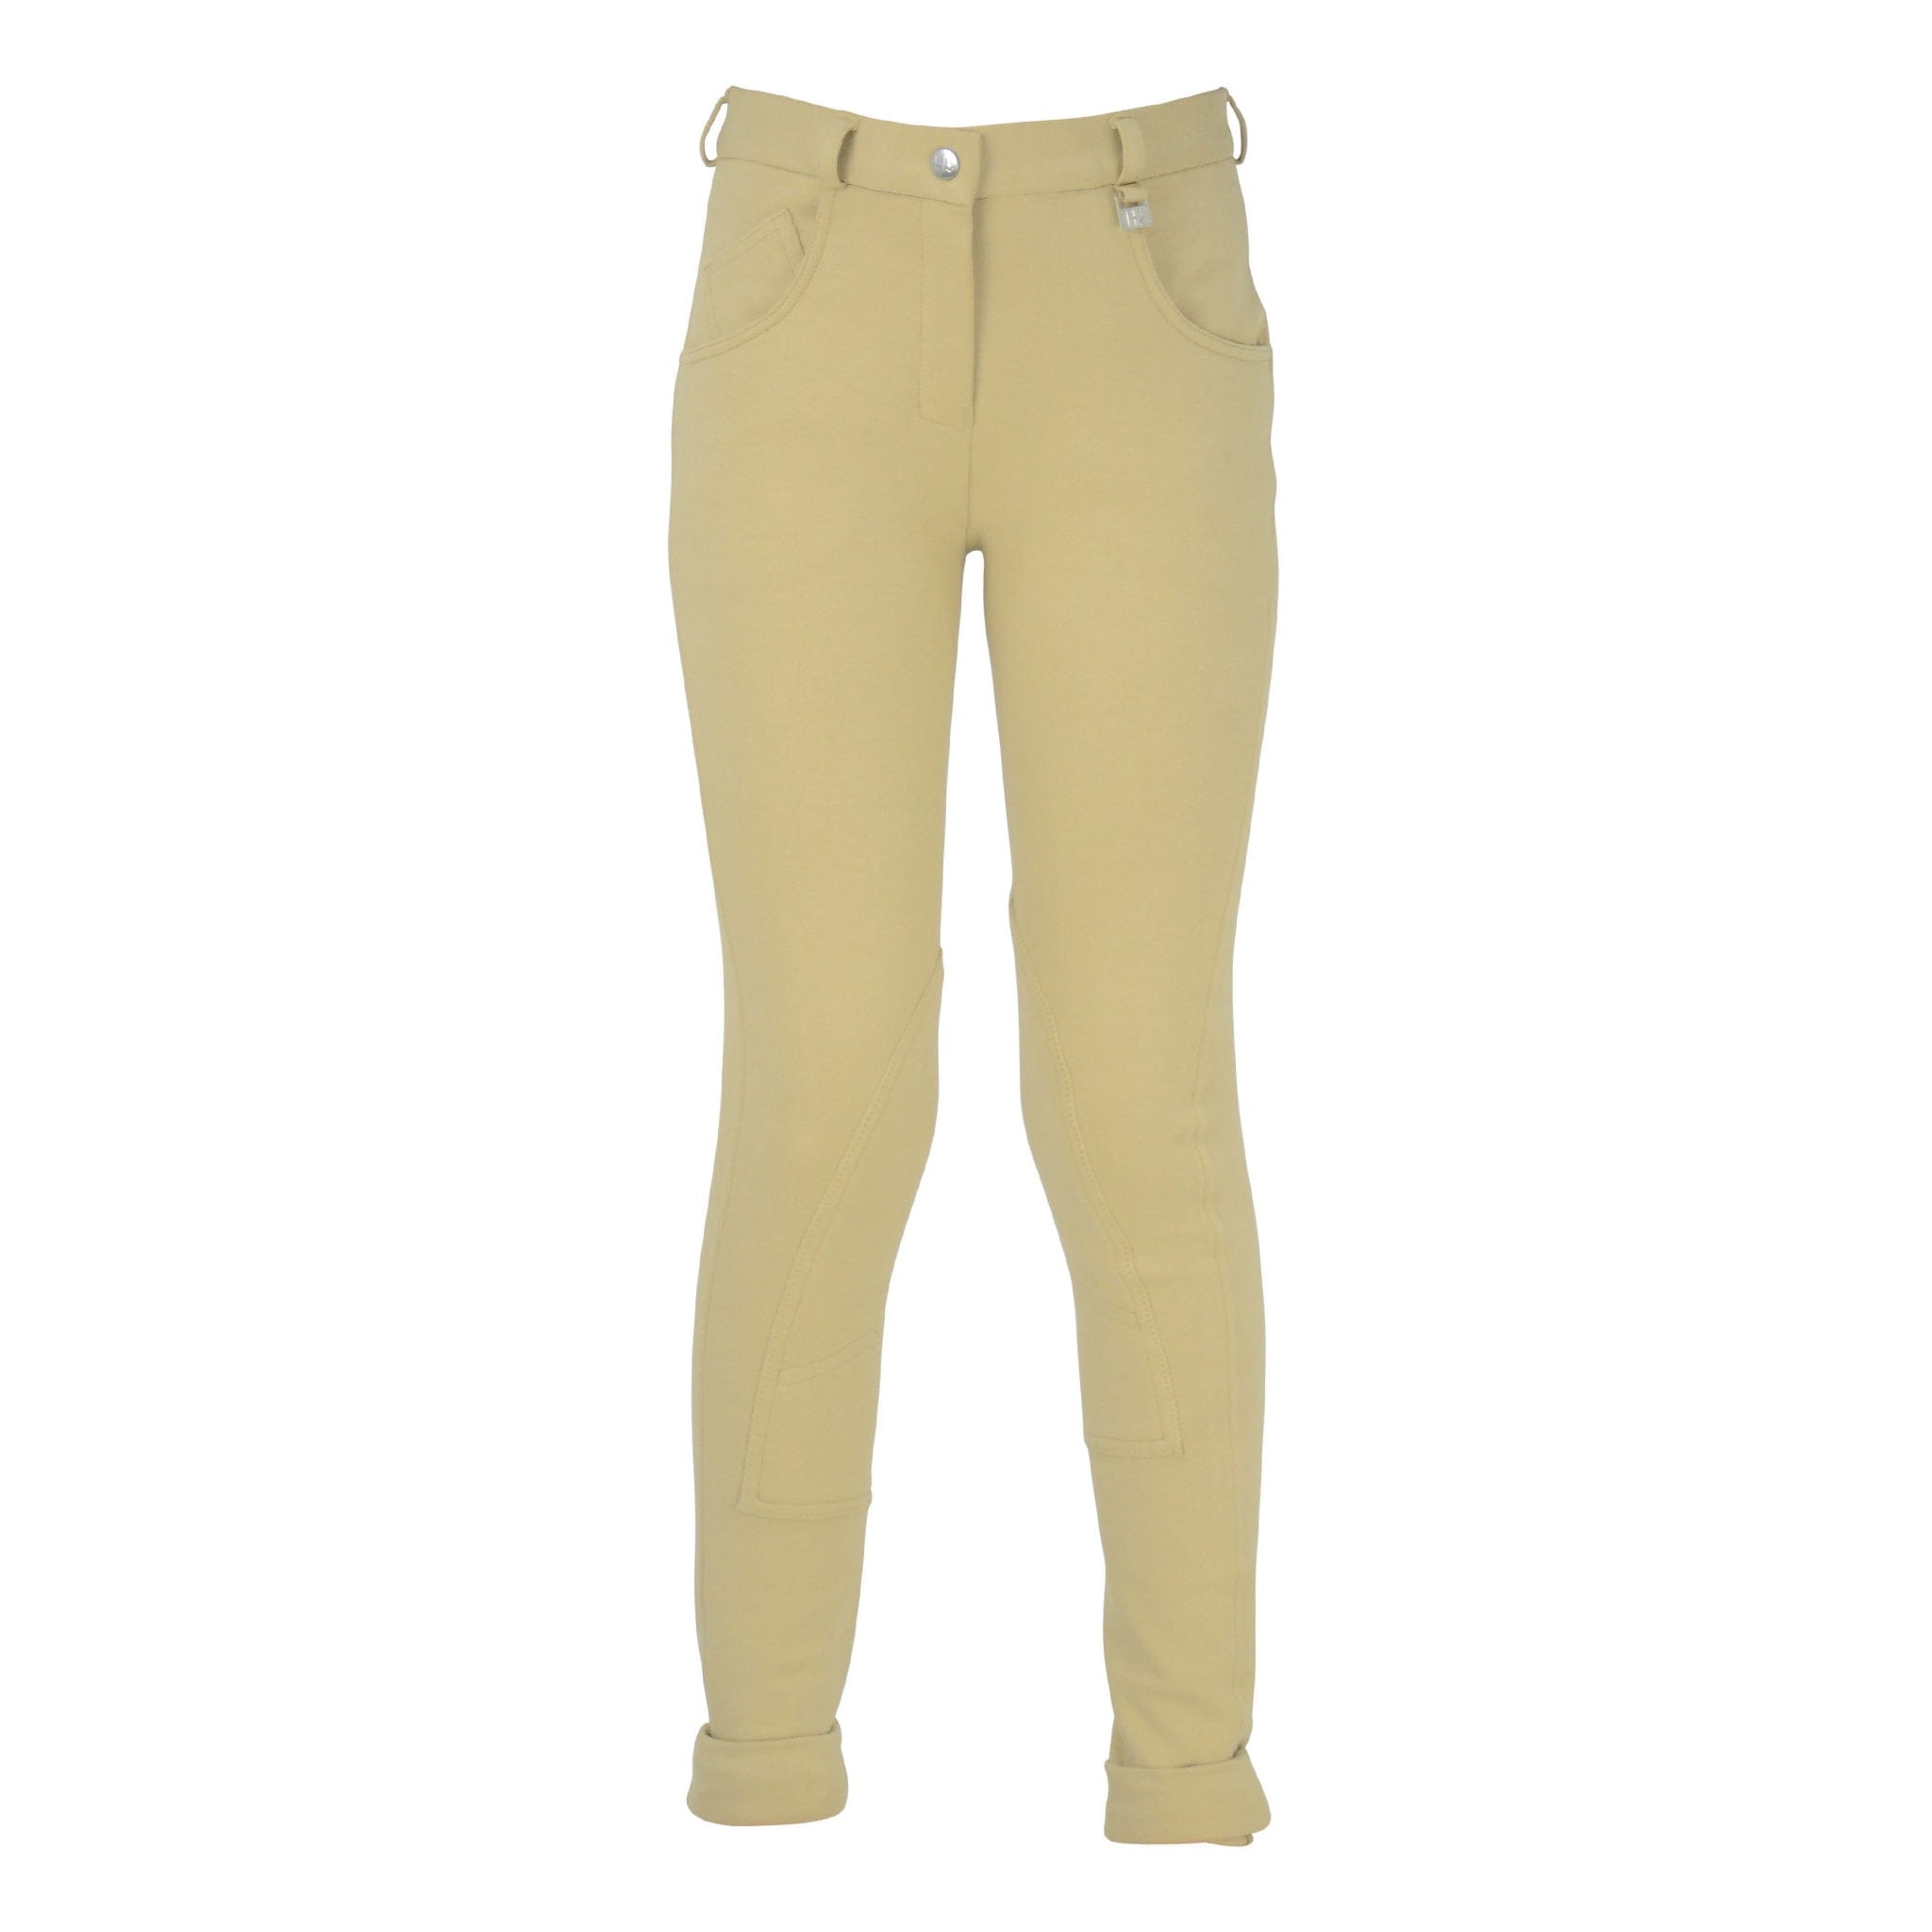 HyPerformance Children's Burton Full Seat Jodhpurs in Beige Front View 11188